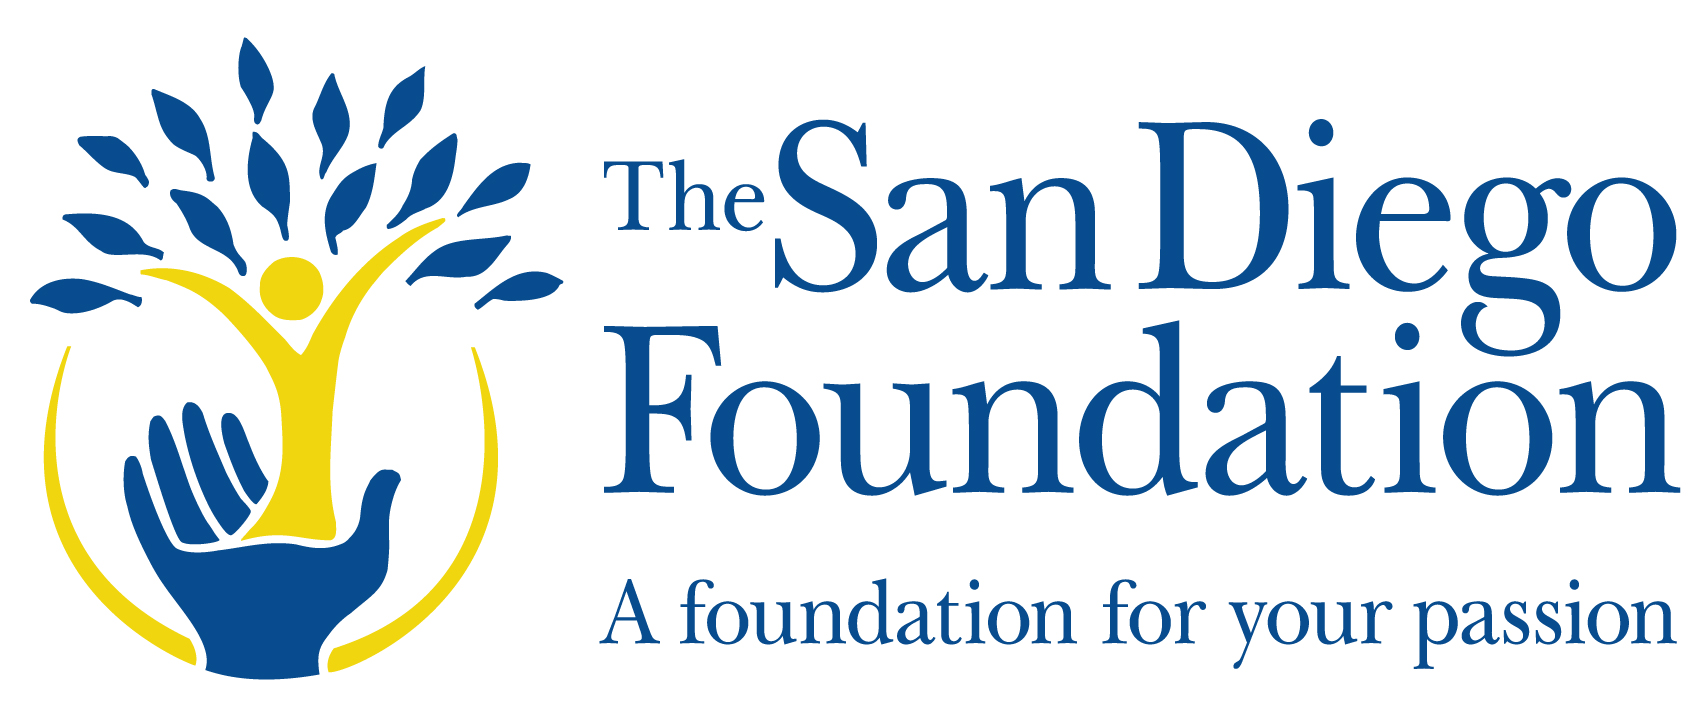 the san diego foundation a foundation for your passion logo